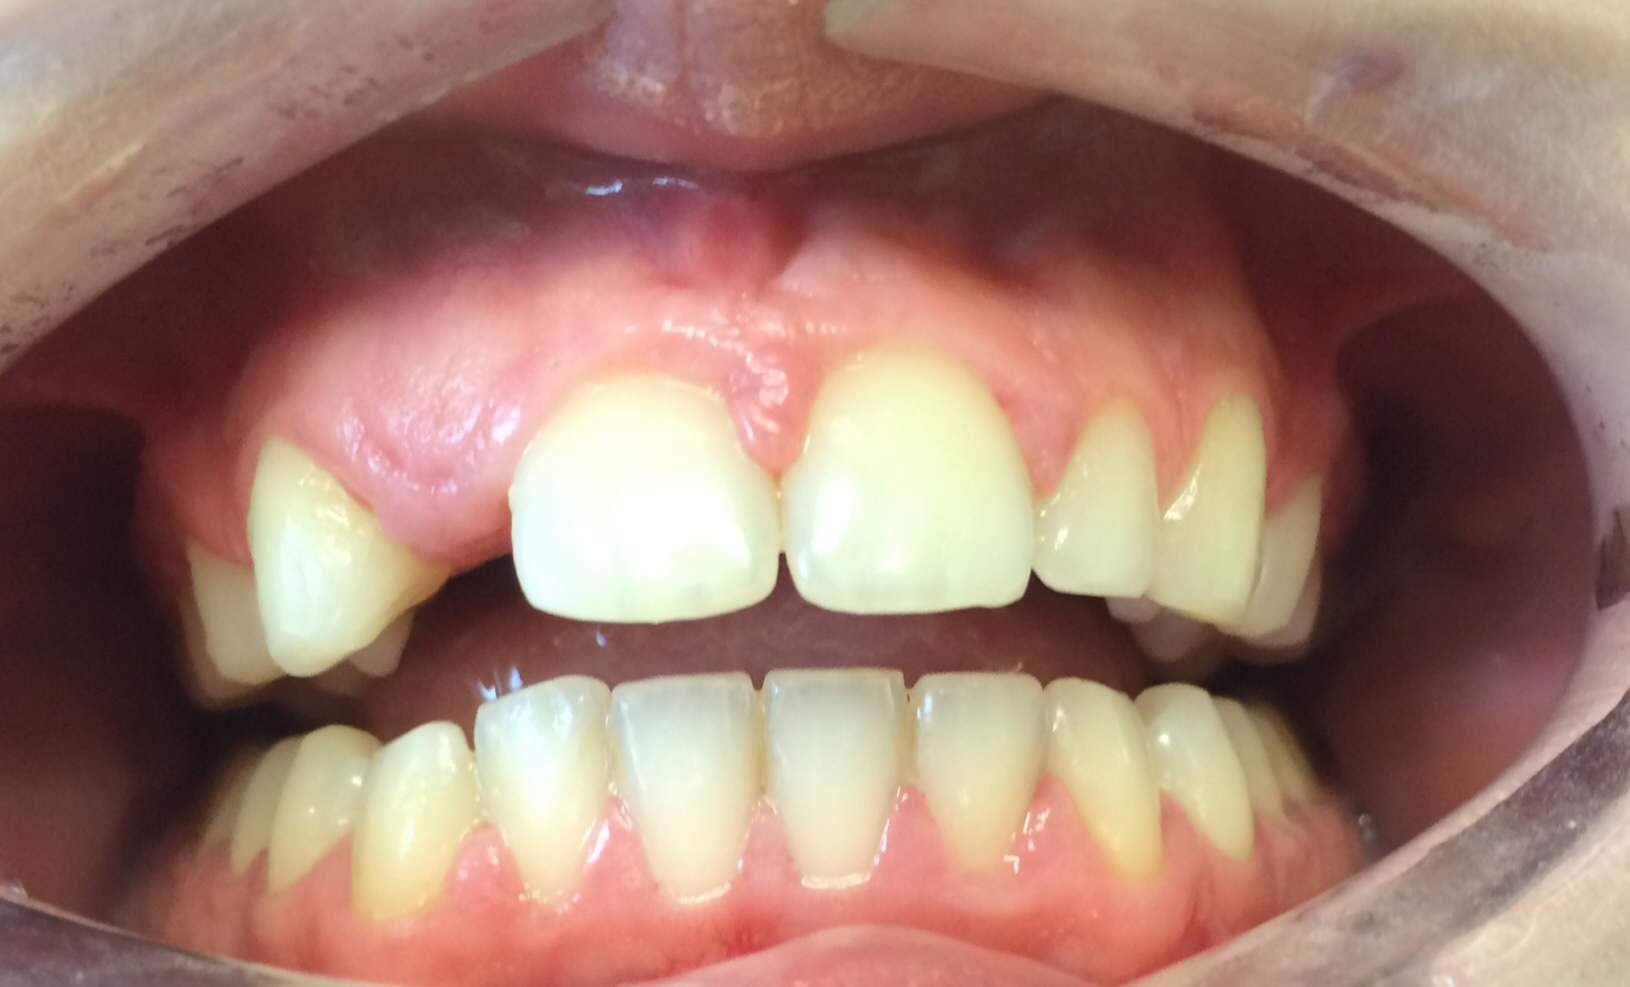 Missing upper lateral incisor